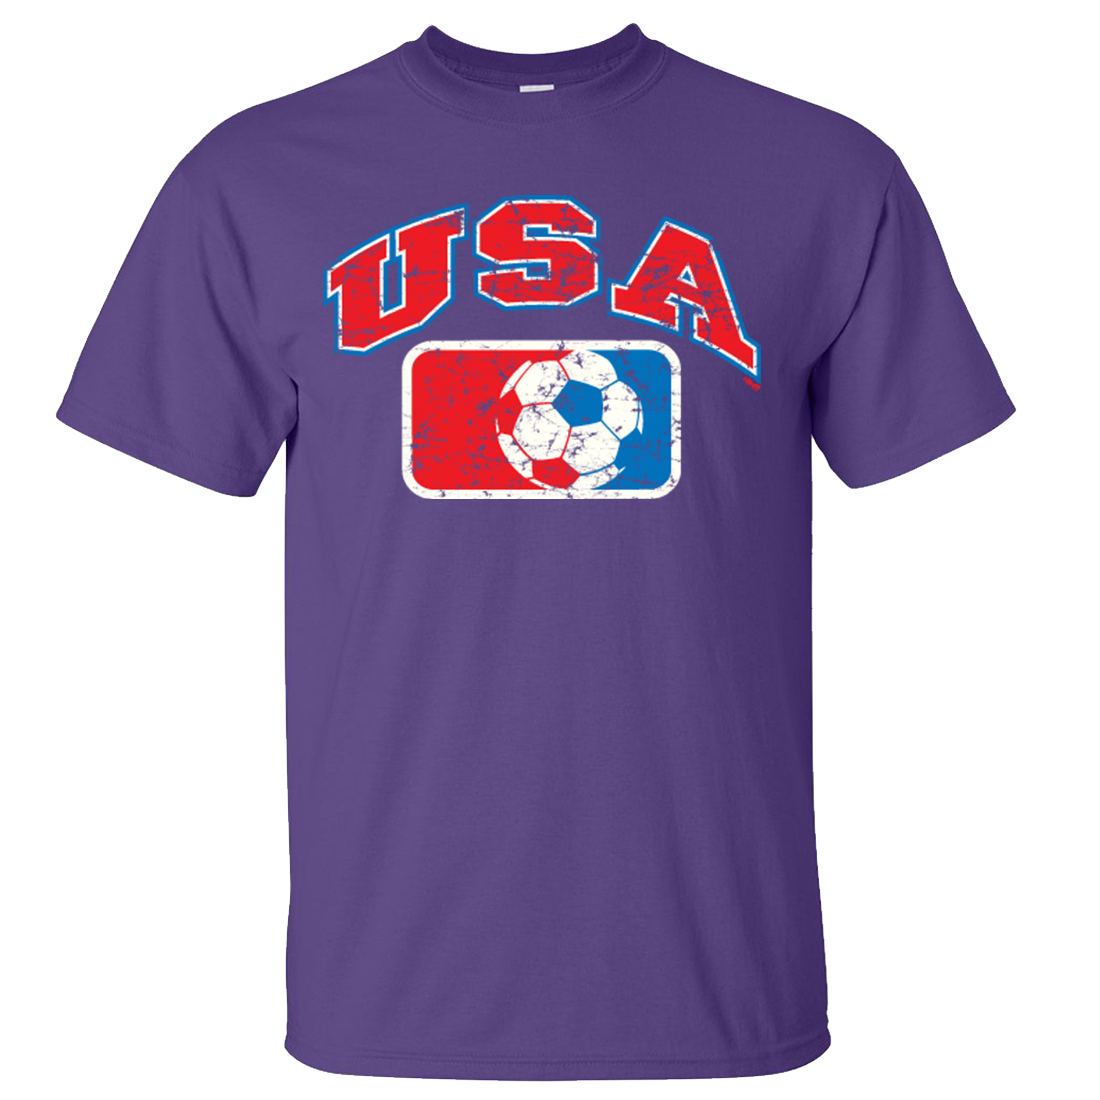 Soccer clothing stores